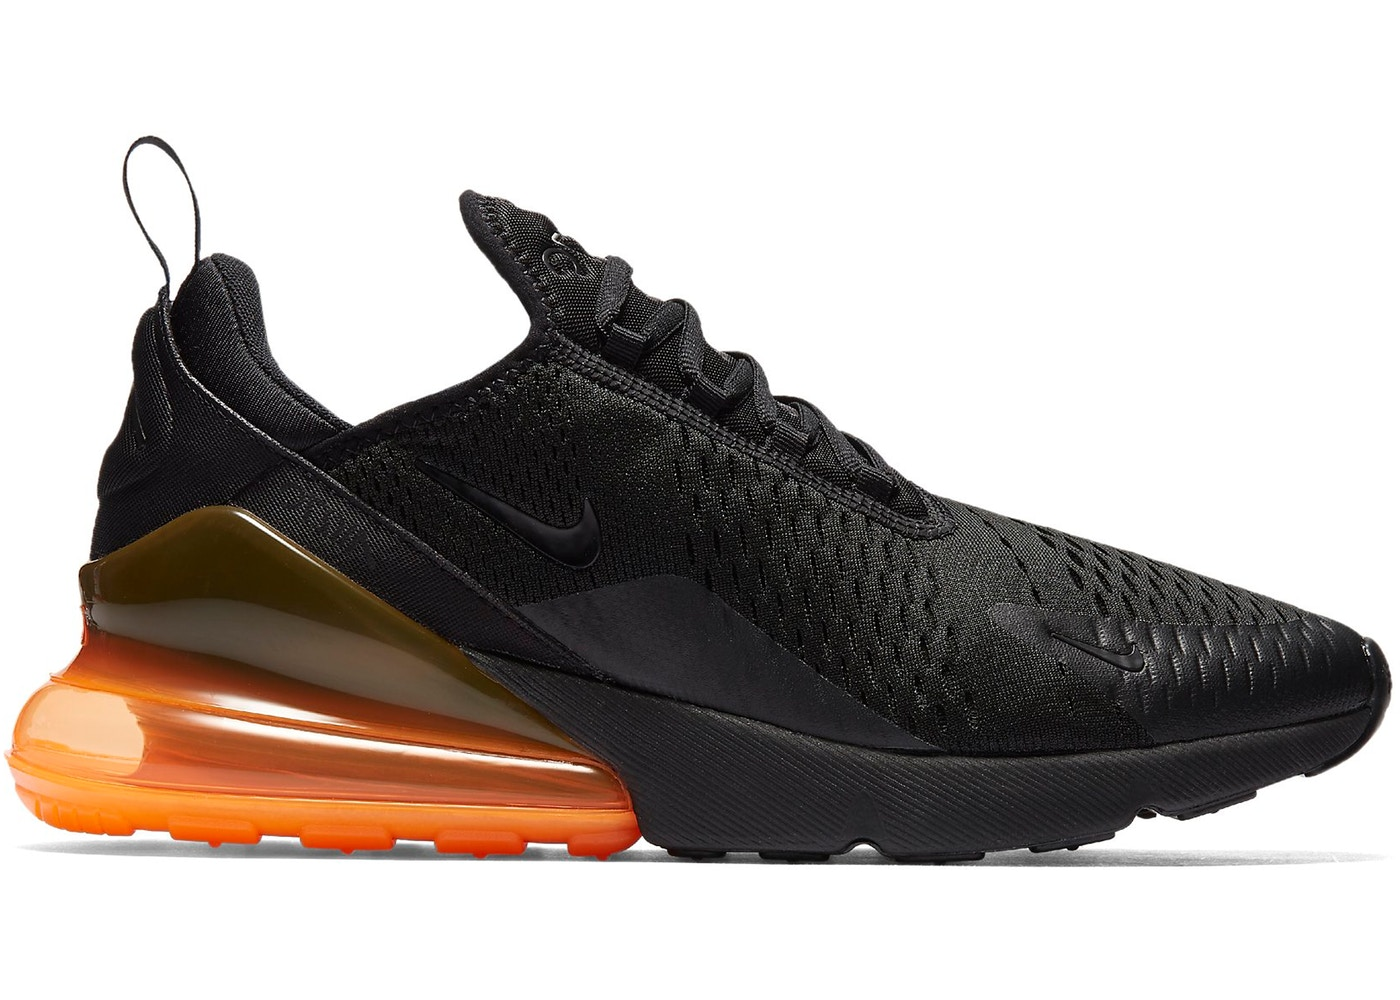 new arrival 095ce 81dcb Air Max 270 Black Total Orange